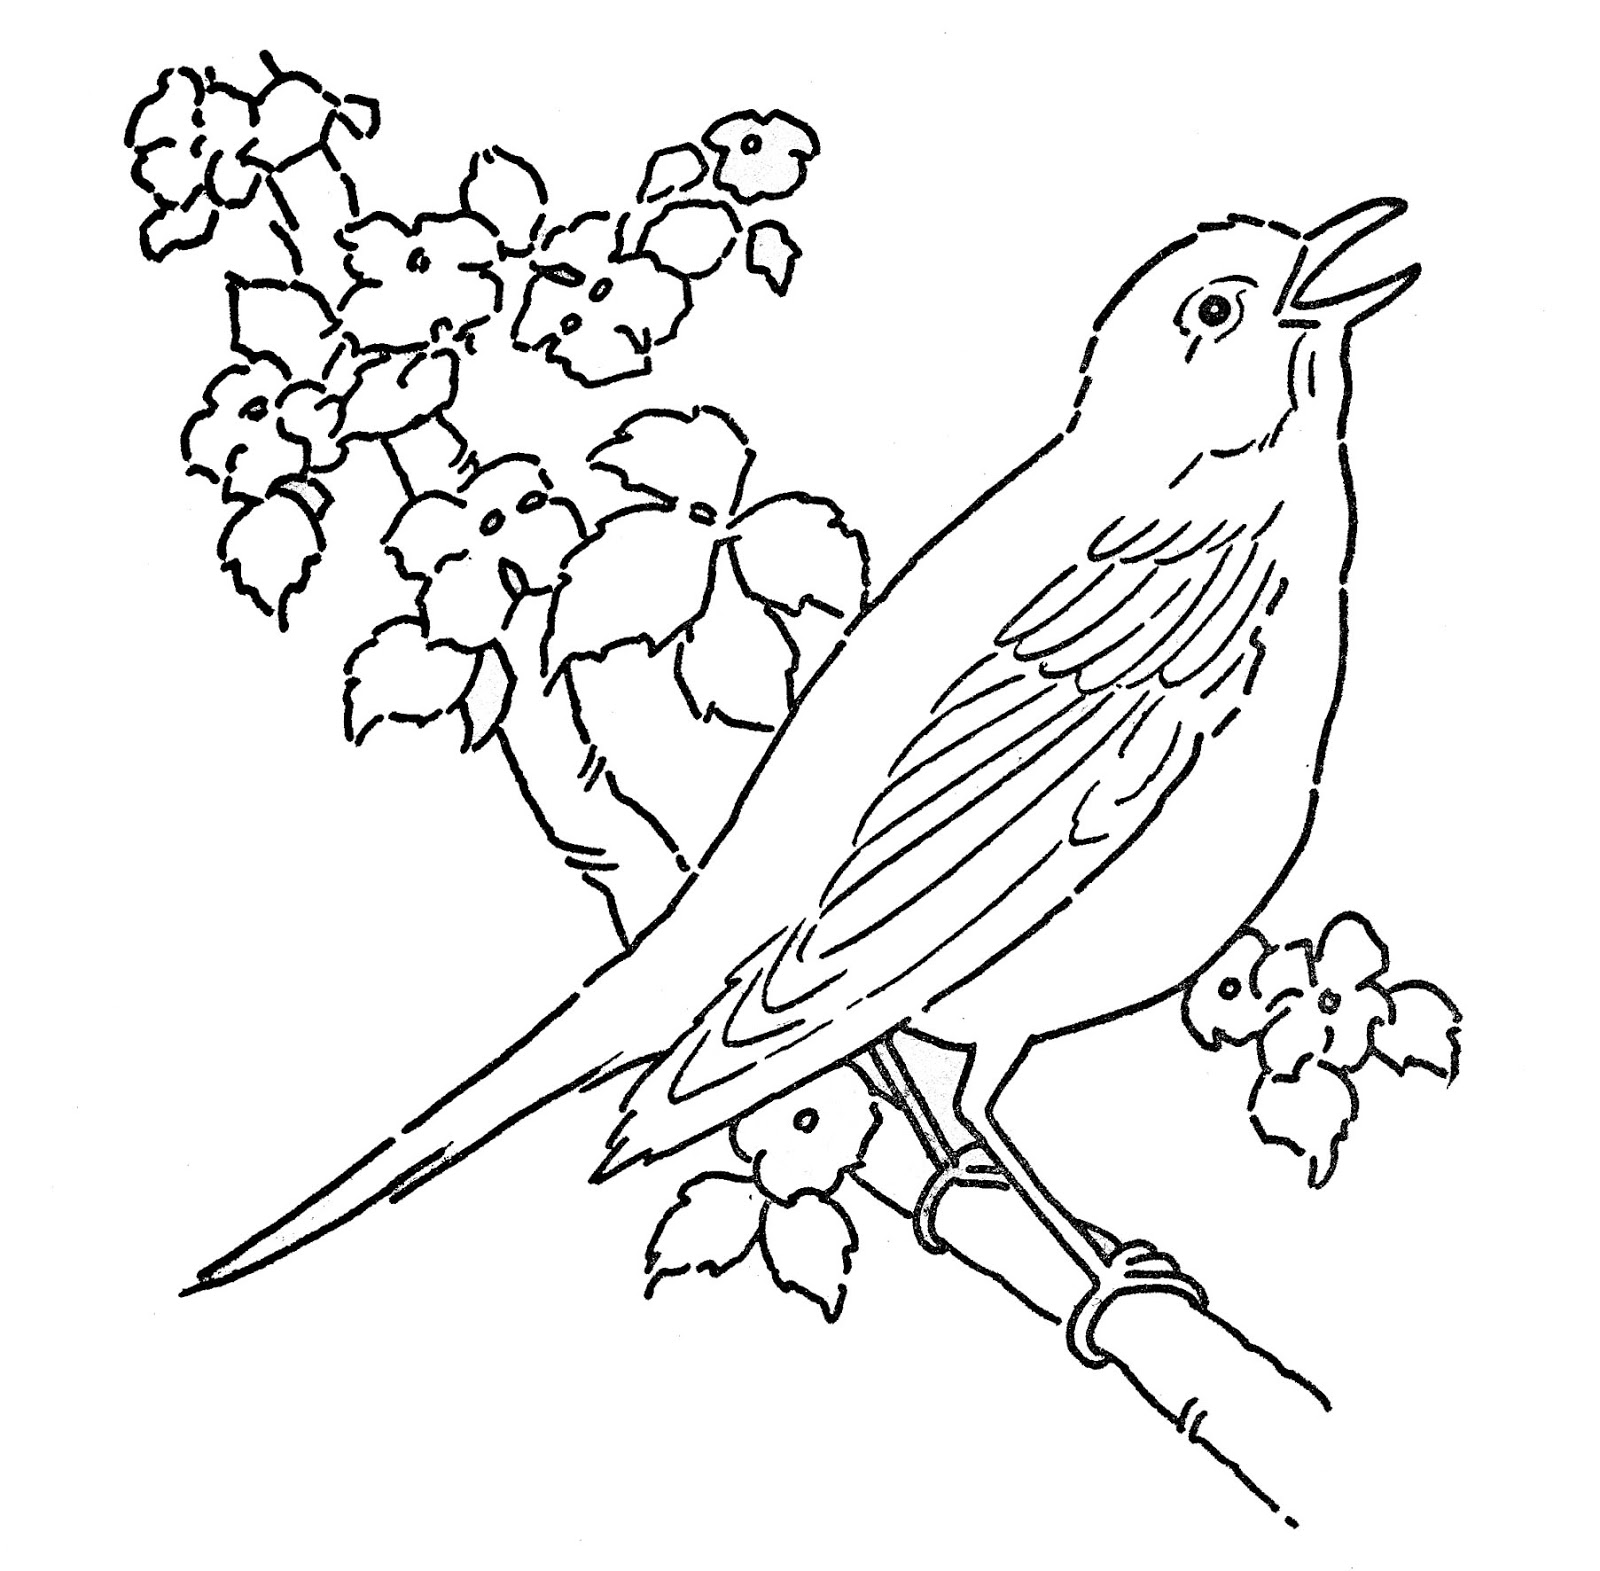 colouring pictures of birds birds coloring pages getcoloringpagescom pictures of birds colouring